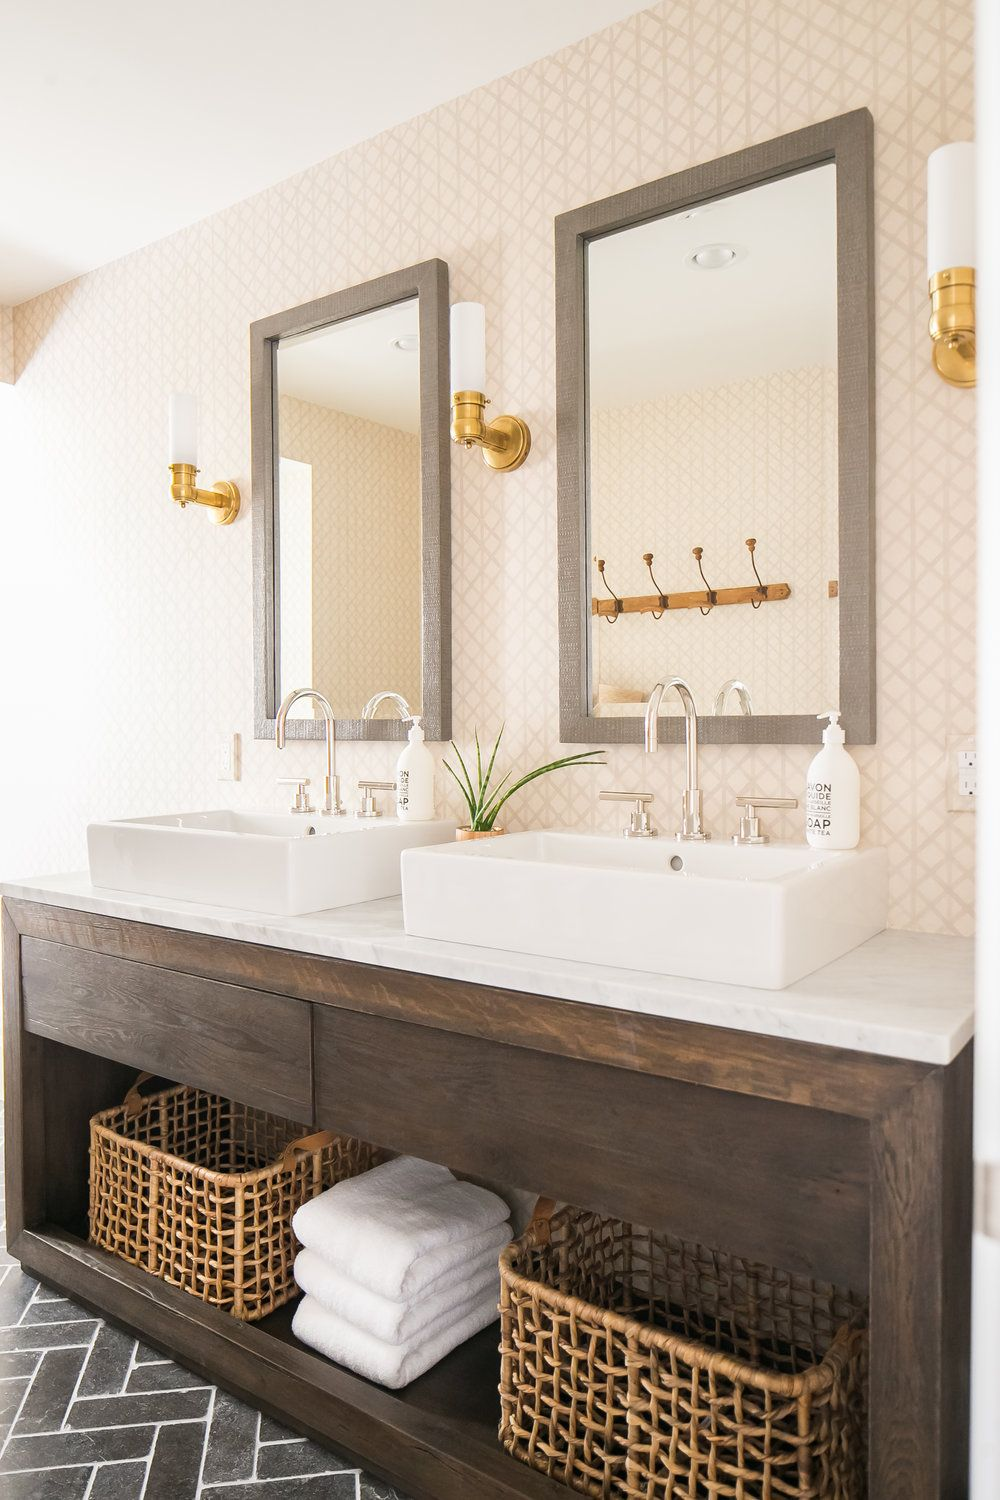 Modern Farmhouse Bathroom Idea With Wood Framed His And Her Mirrors Above Vessel Trough S Reclaimed Wood Bathroom Vanity Wood Bathroom Vanity Bathrooms Remodel